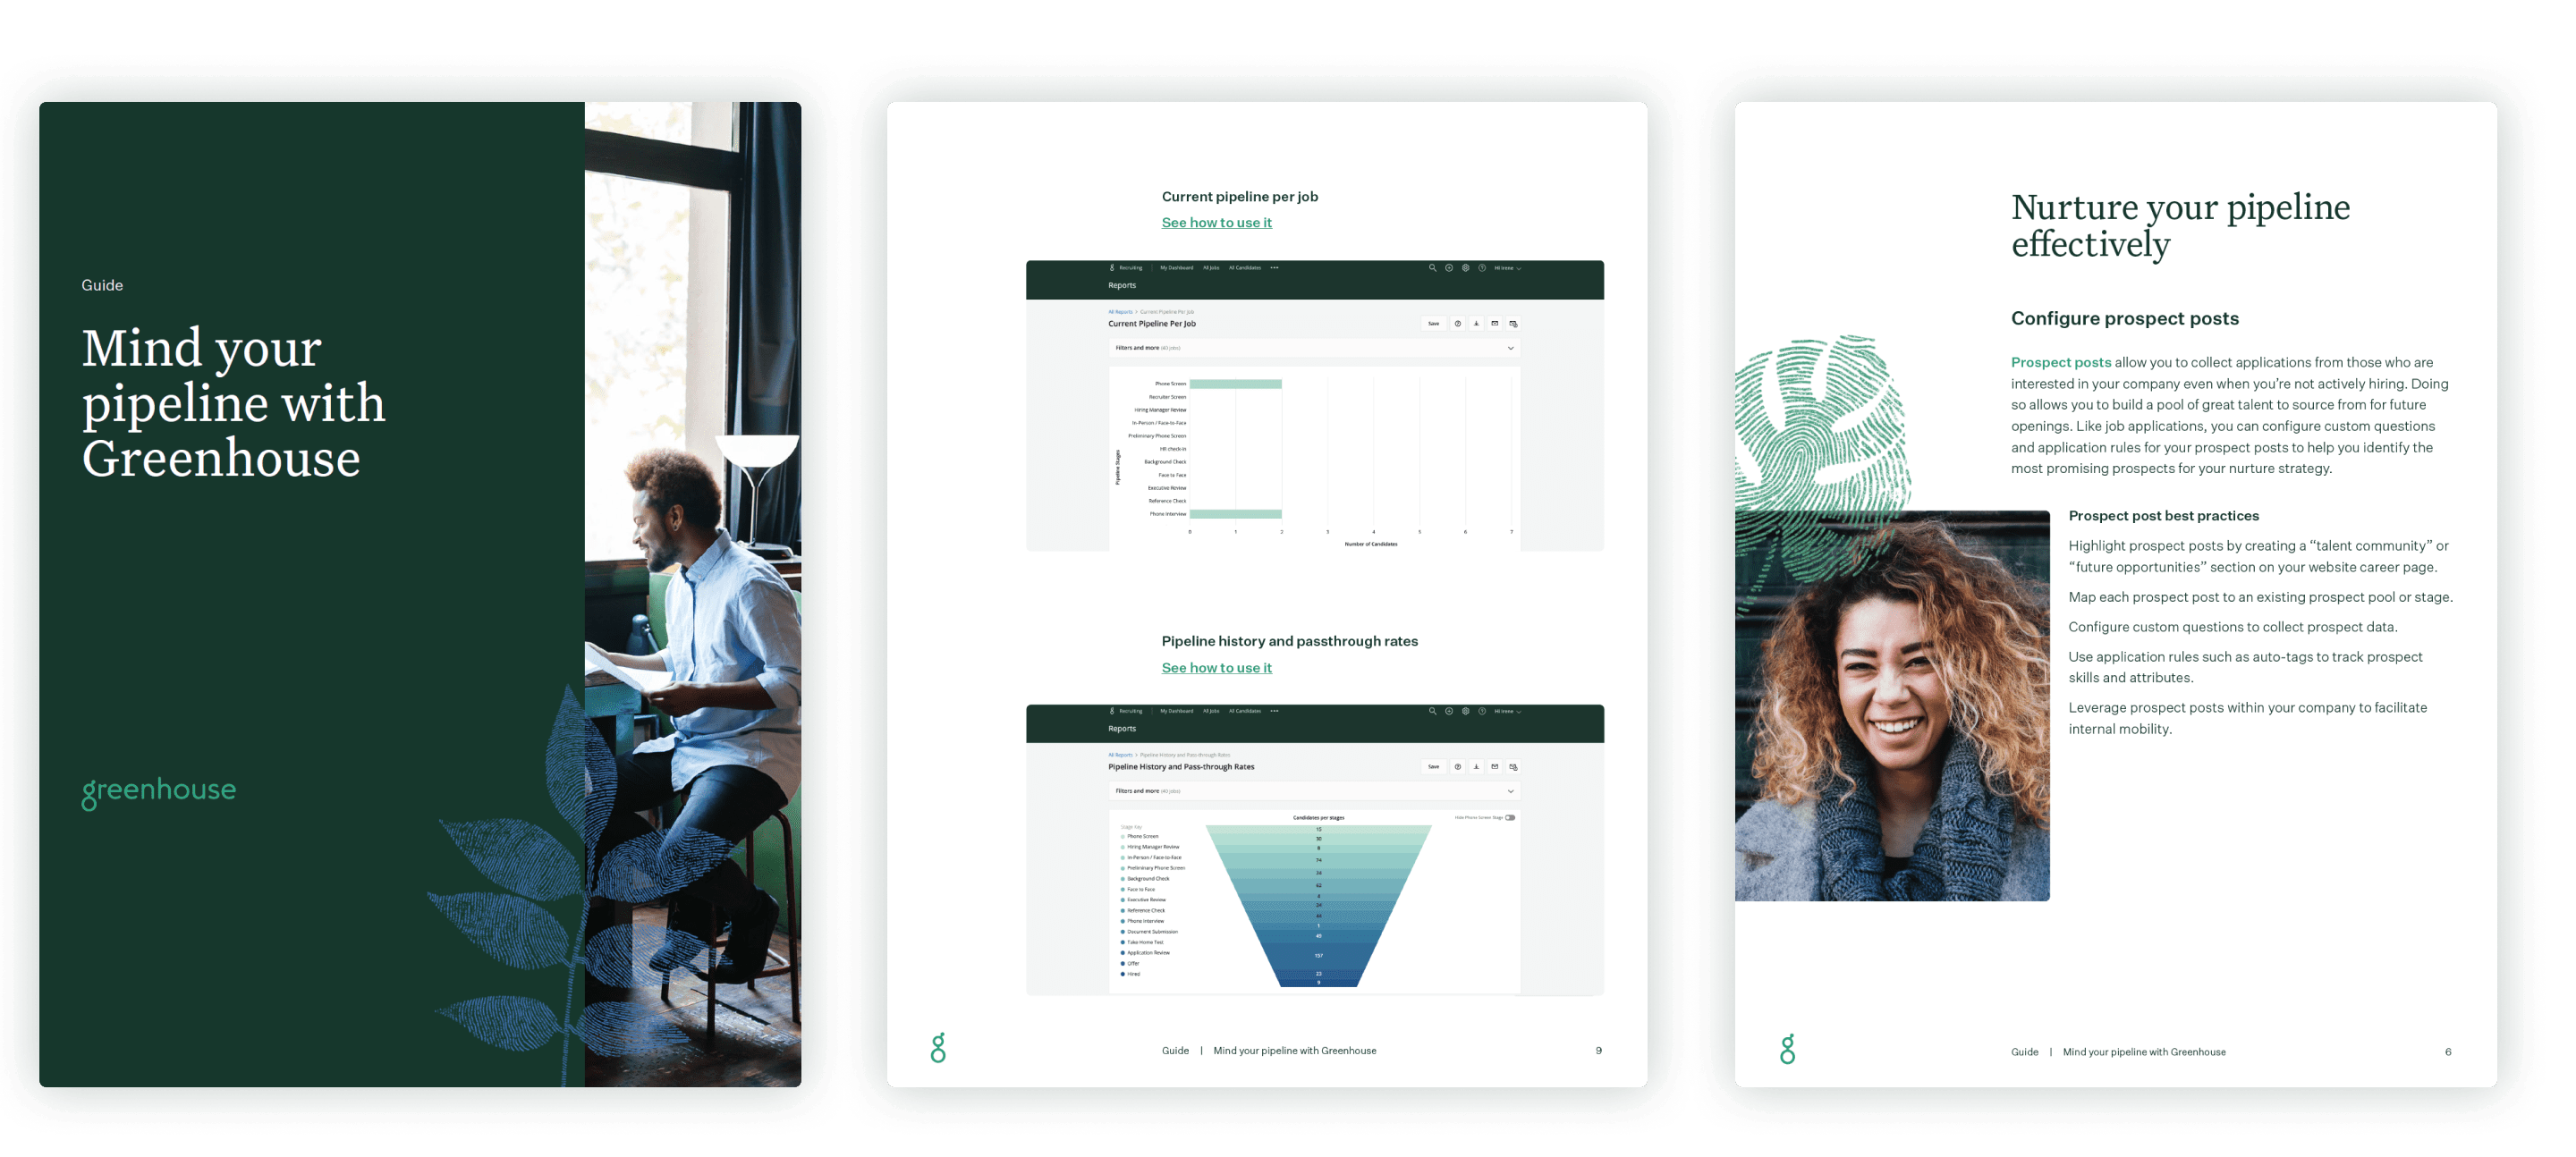 Sample pages of the mind your pipeline with Greenhouse guide